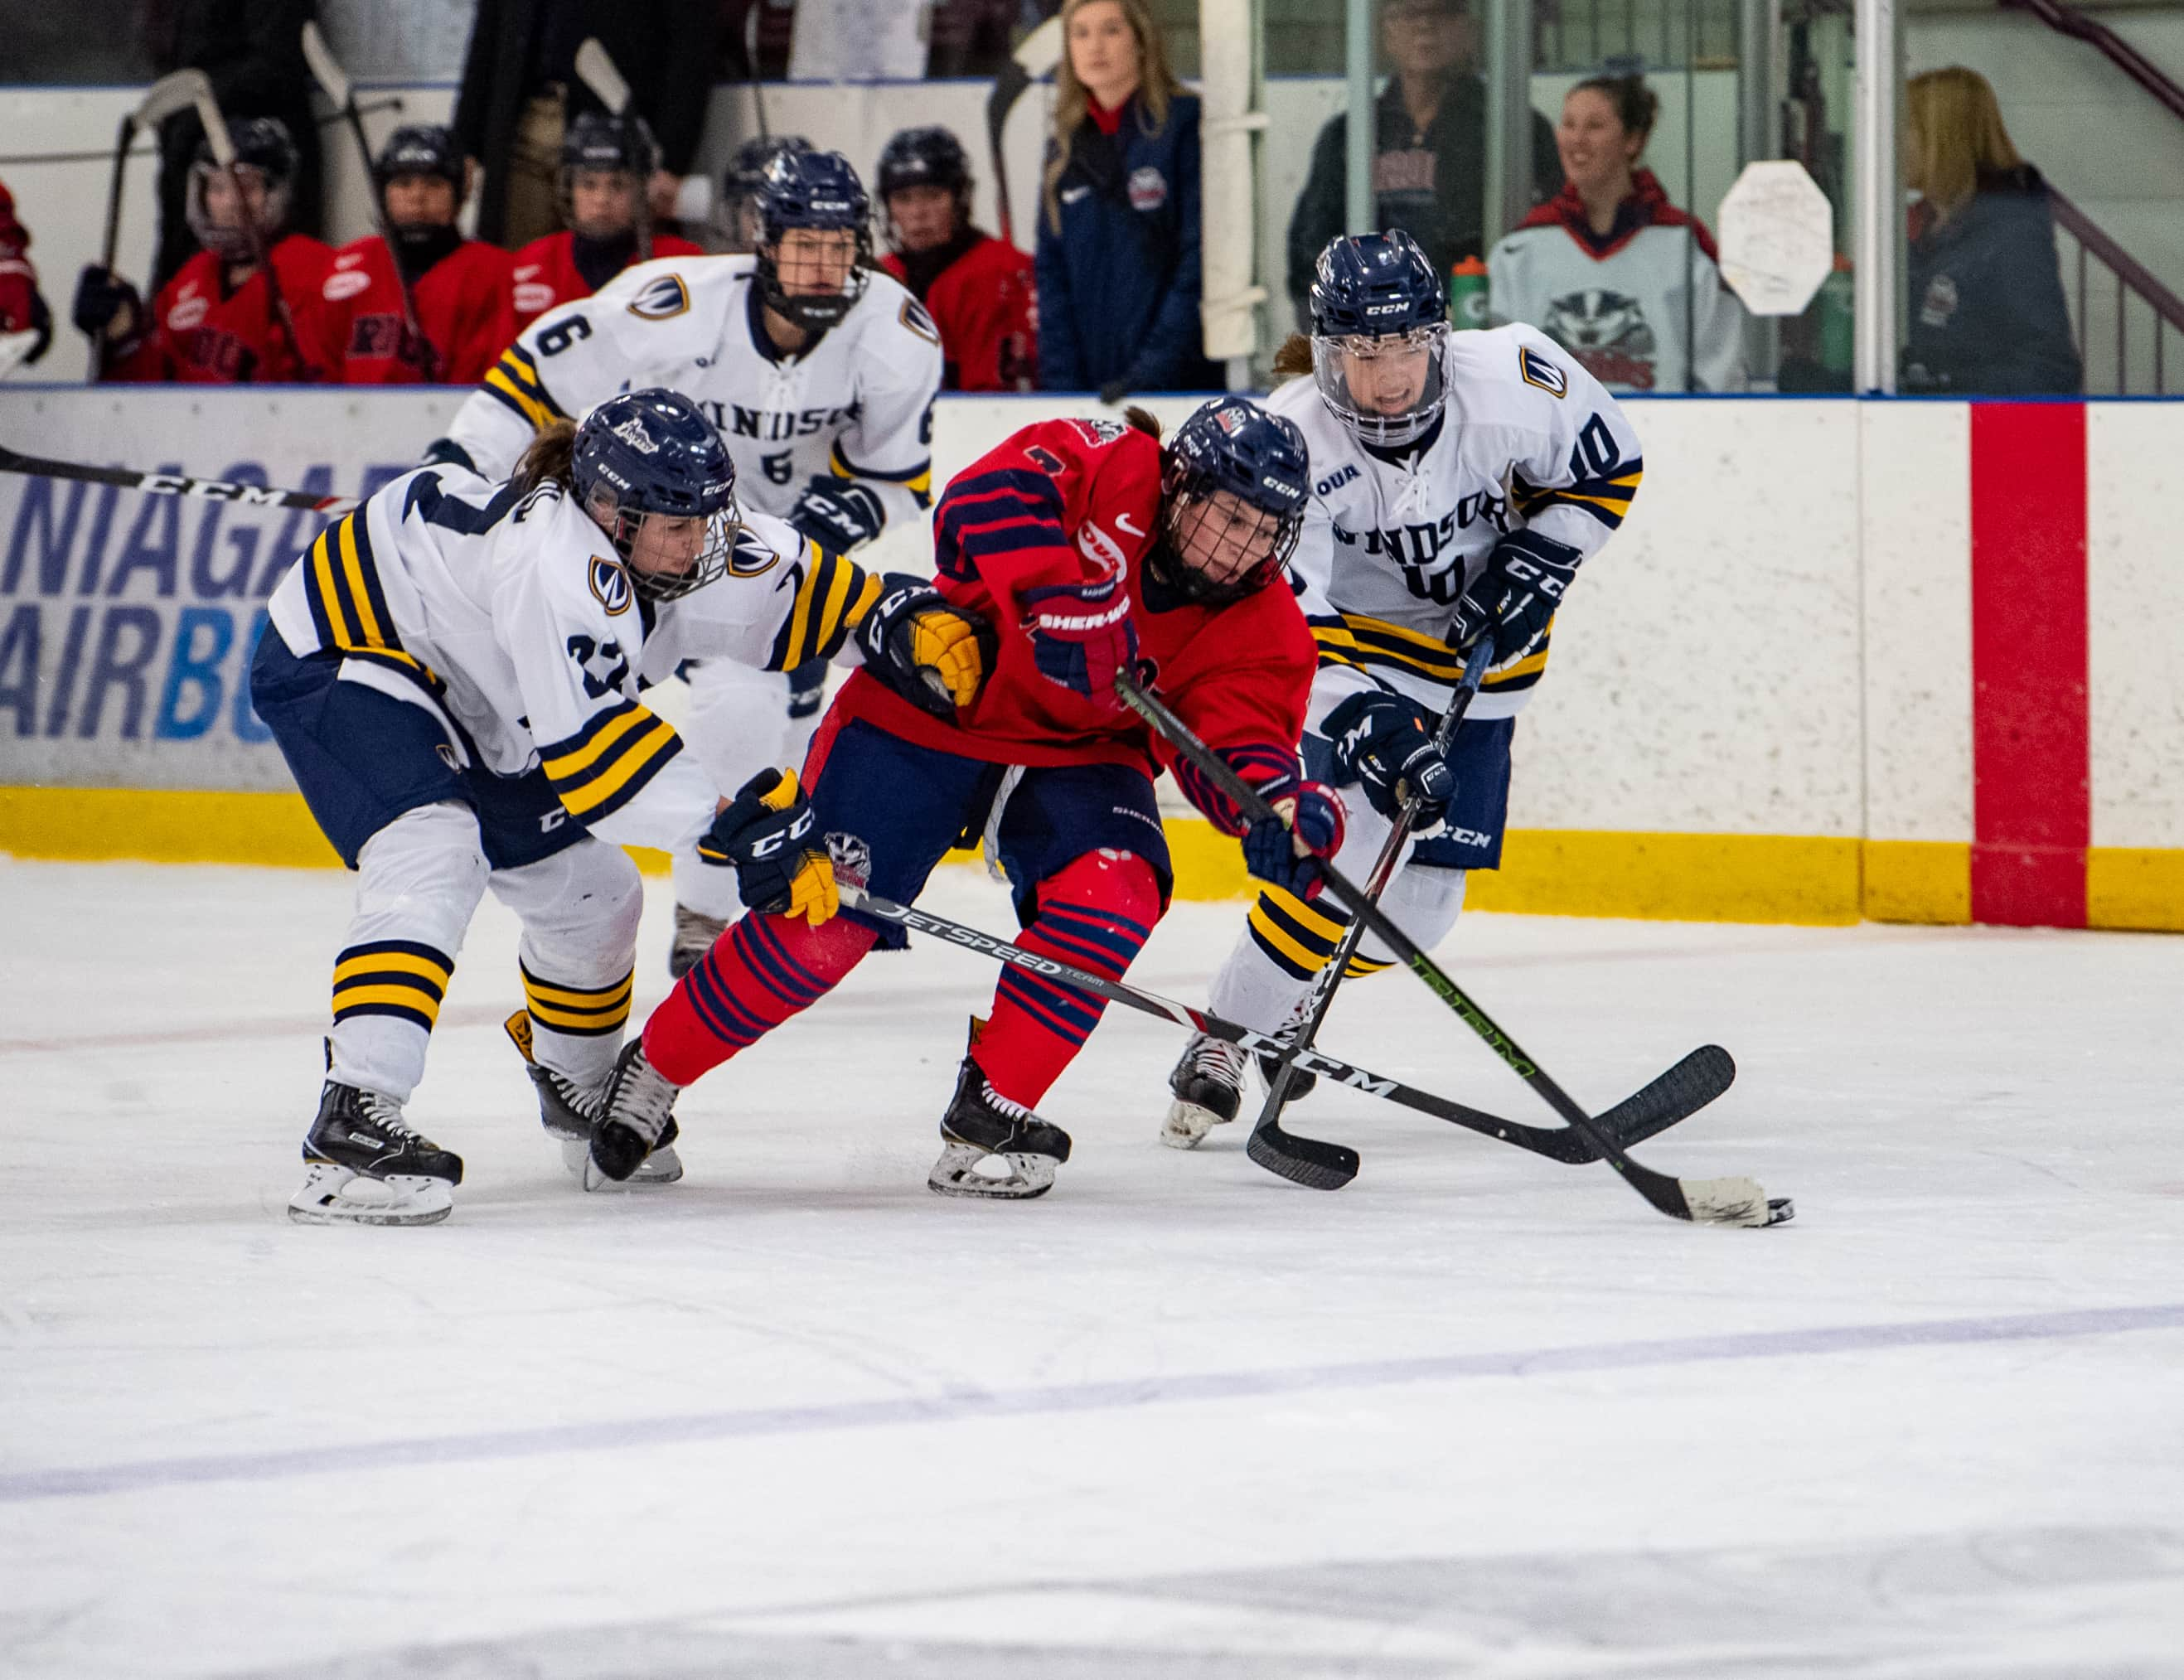 Get us more followers: How Victoria Dewar's research increased online engagement for Brock women's hockey